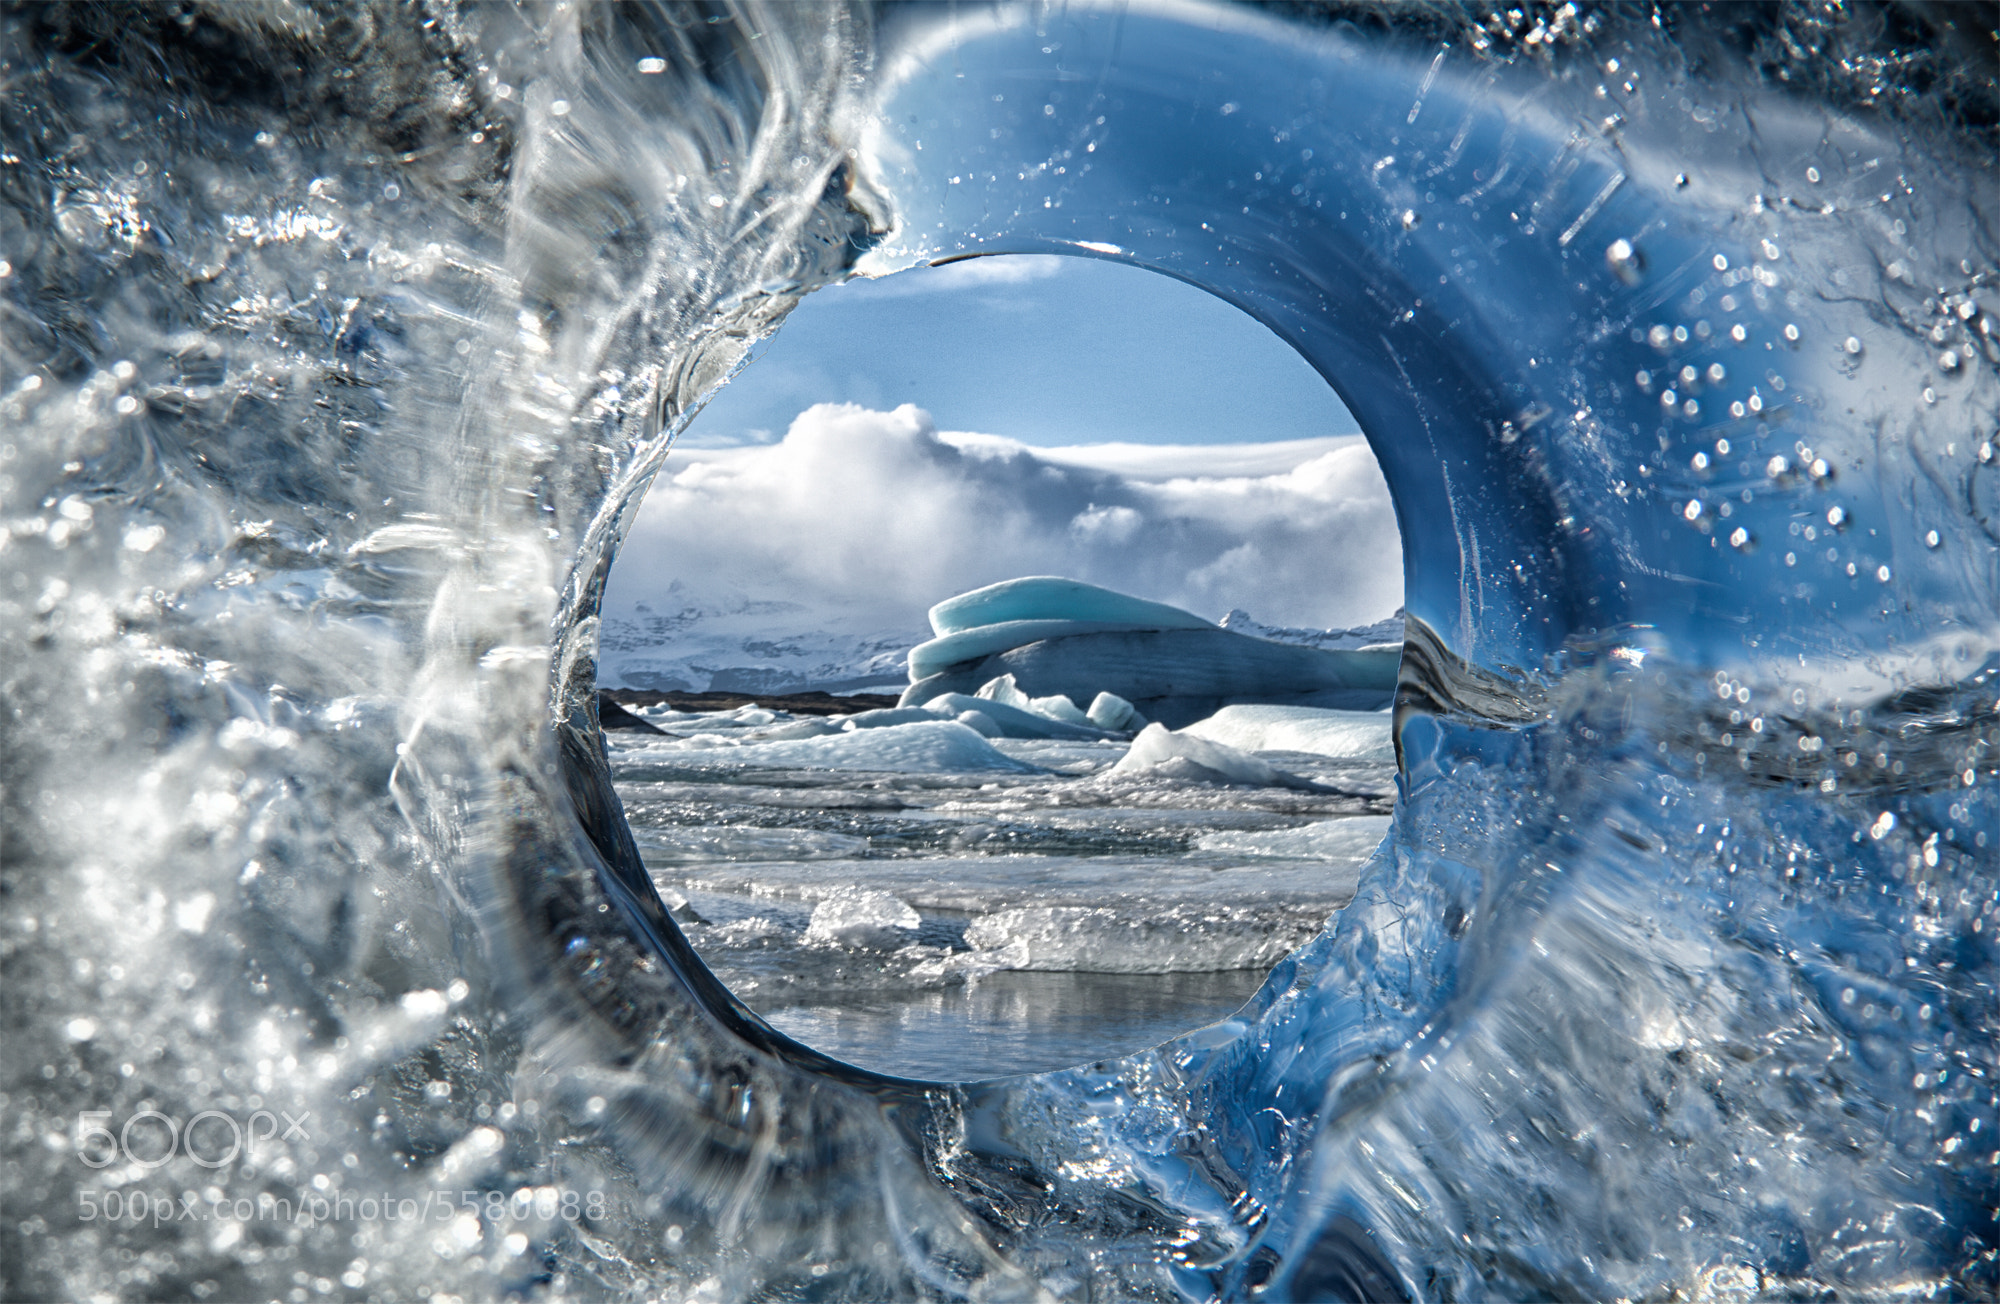 Photograph Circle of Life by Tim Vollmer on 500px